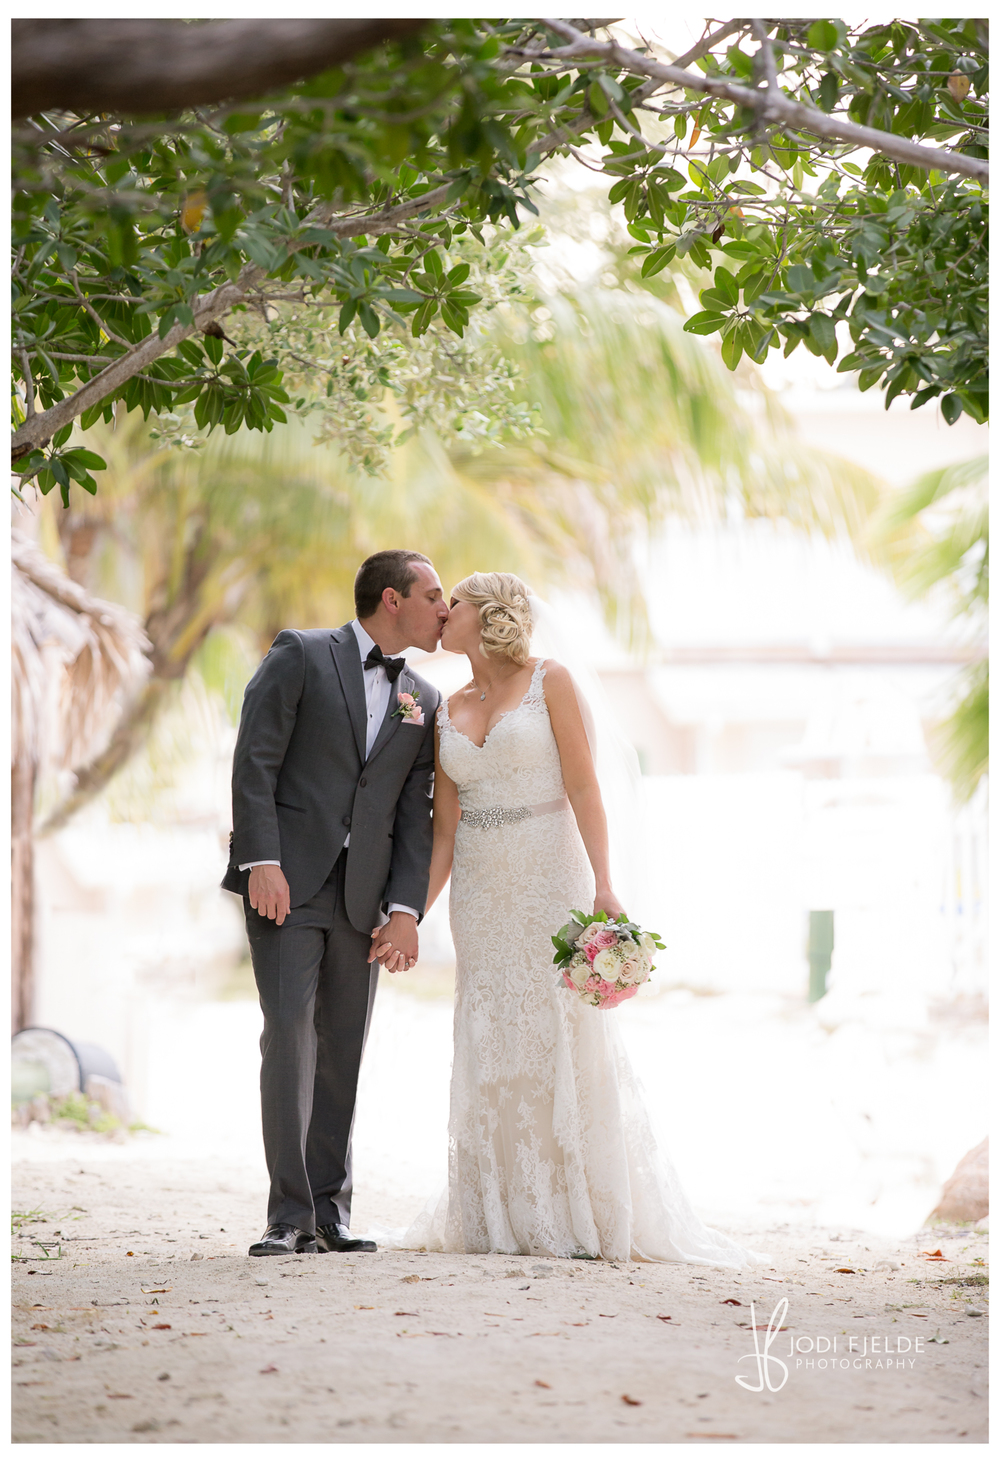 Cocconut_Cove_&_ Marina_ wedding_Kalie_and_Kurt 33.jpg